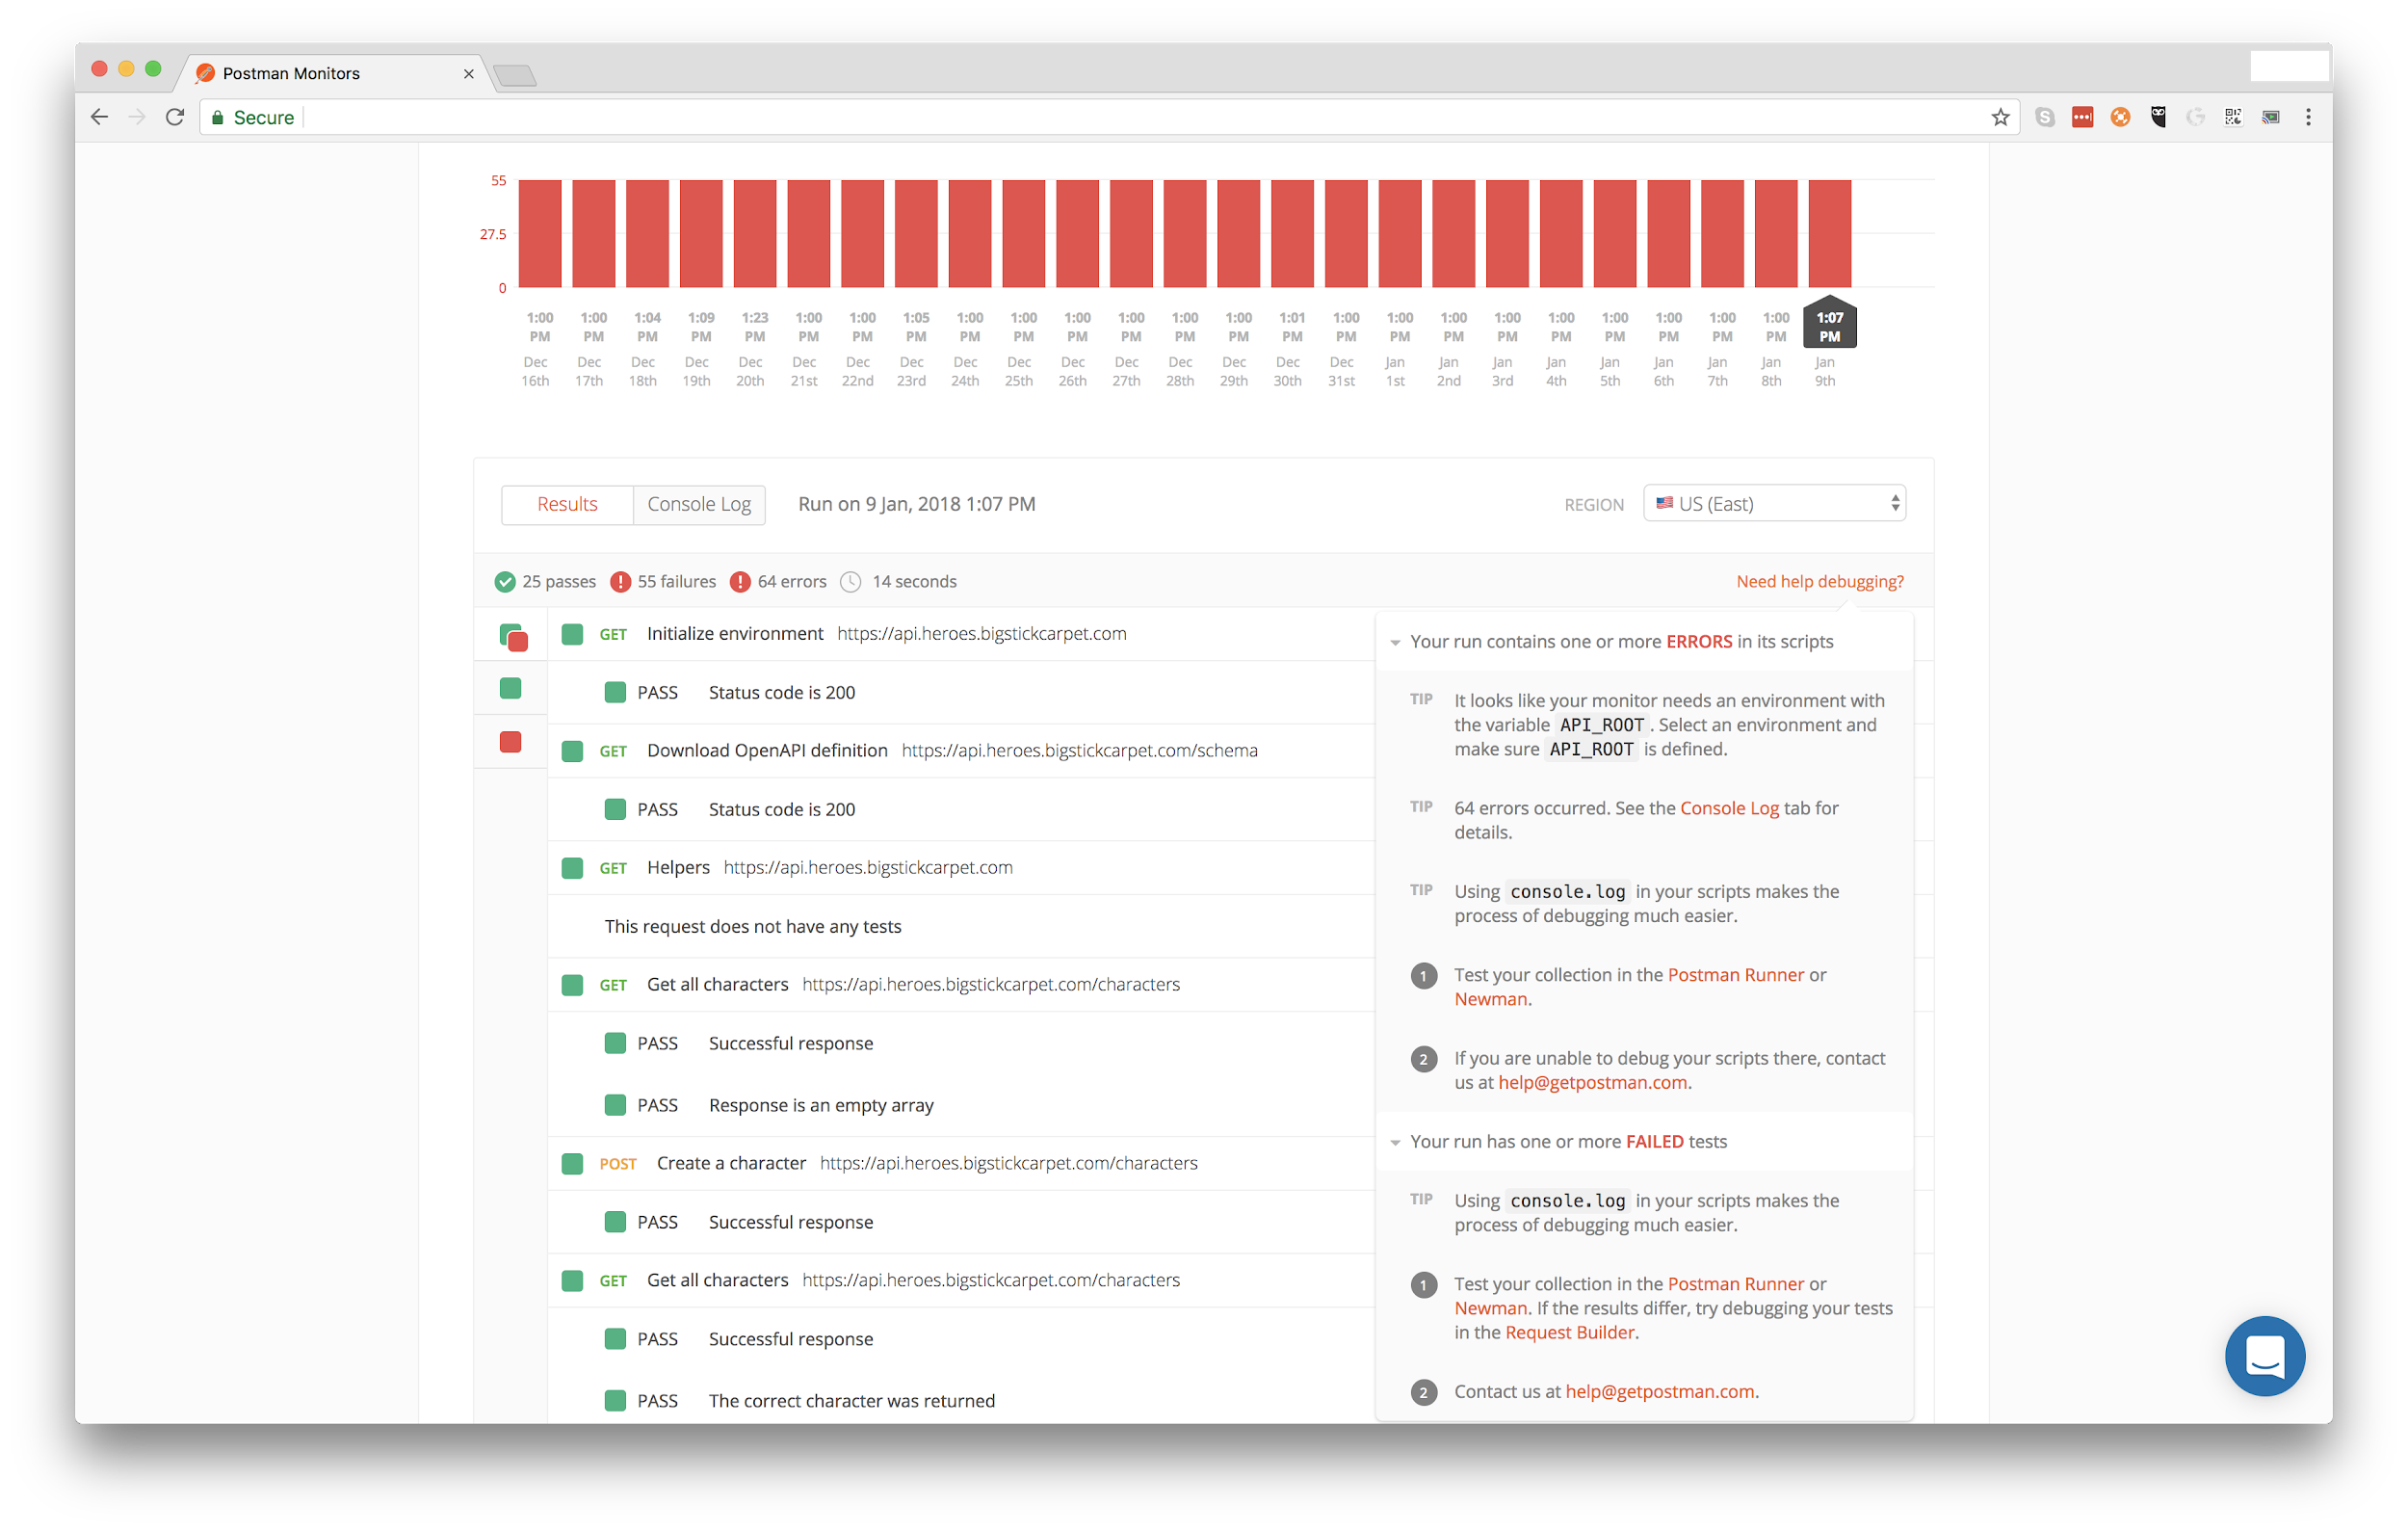 Postman's monitoring dashboard allows you to get the big picture of every monitor you or your team runs on your API.